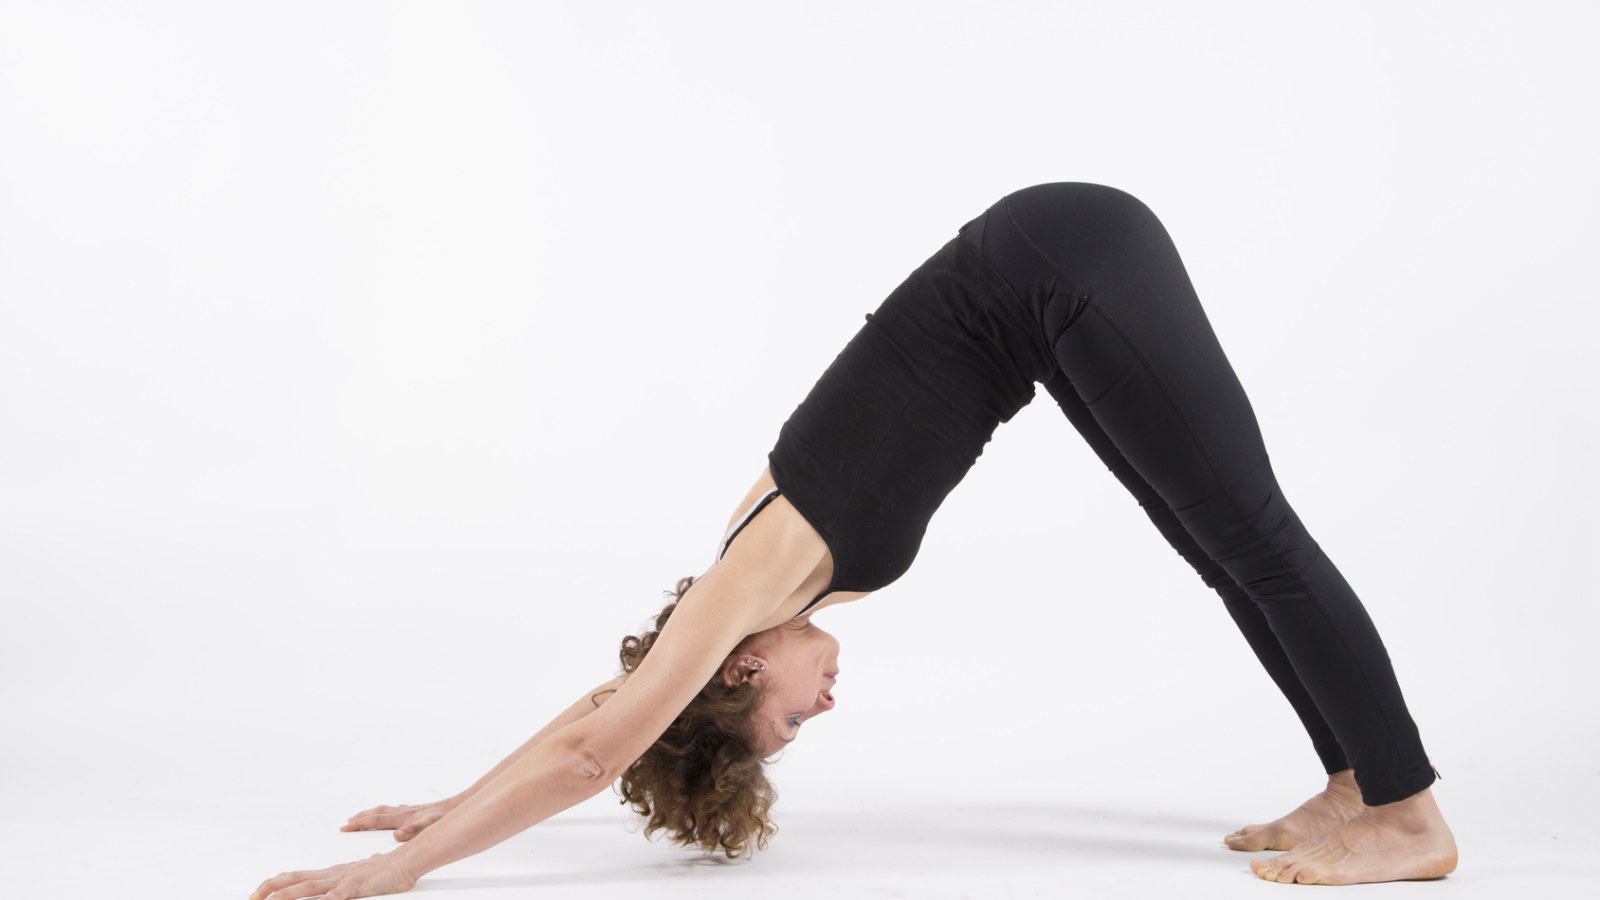 Downward Facing Dog Pose ( Adho Mukha Svanasana)